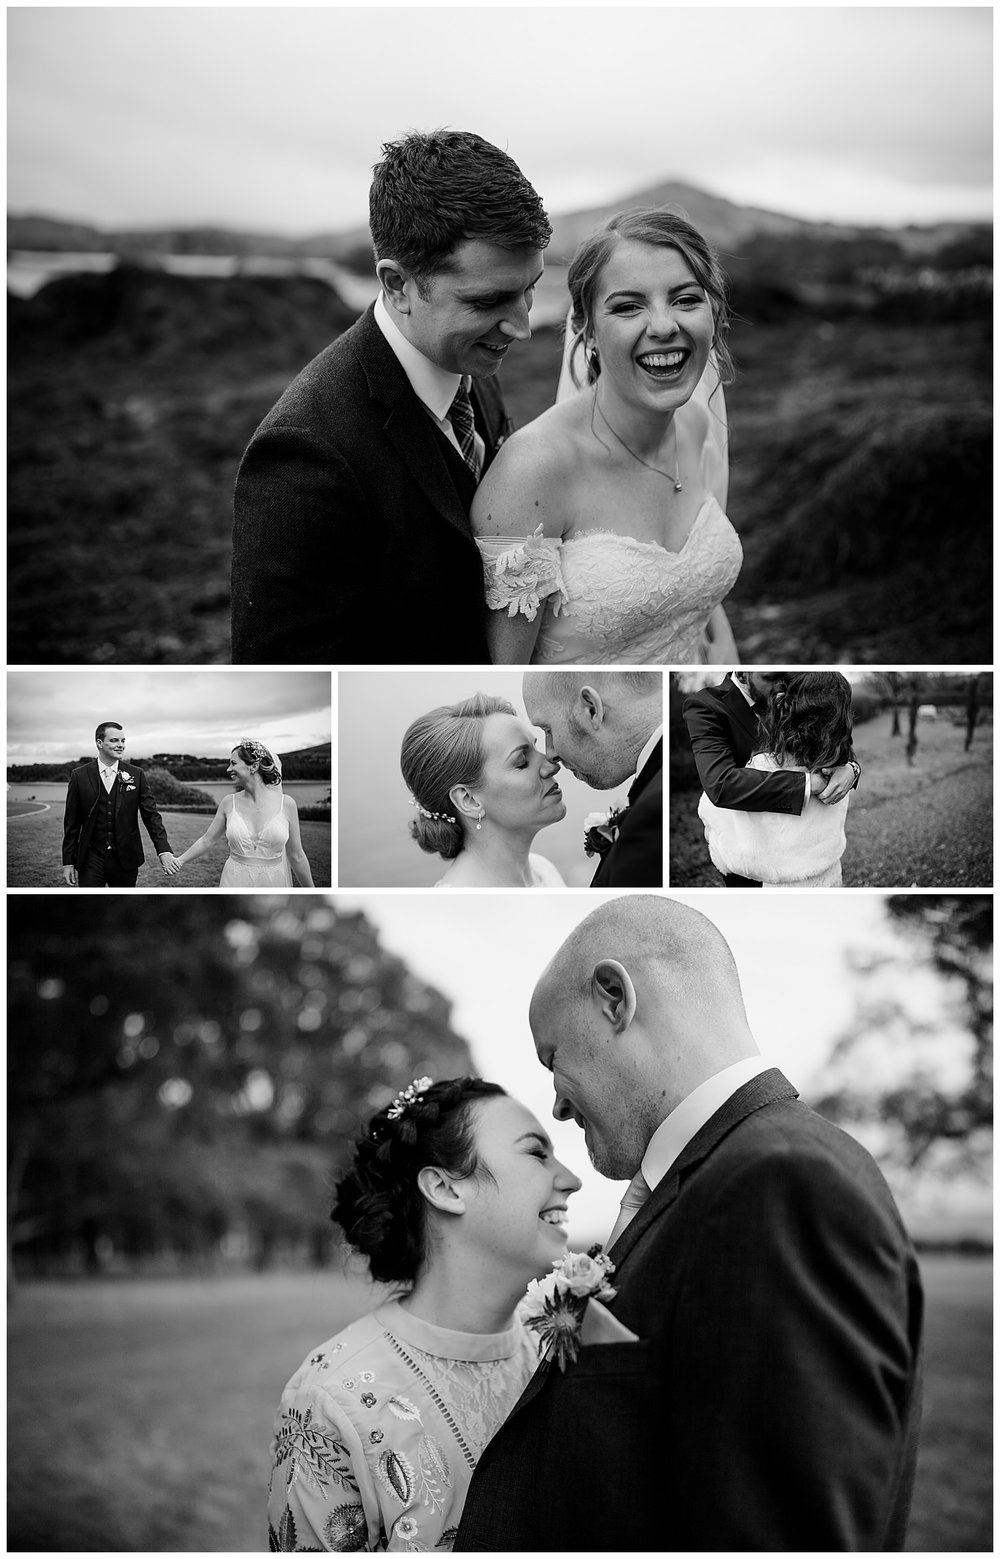 h&m_eccles_hotel_west_cork_wedding_photographer_livia_figueiredo_409.jpg